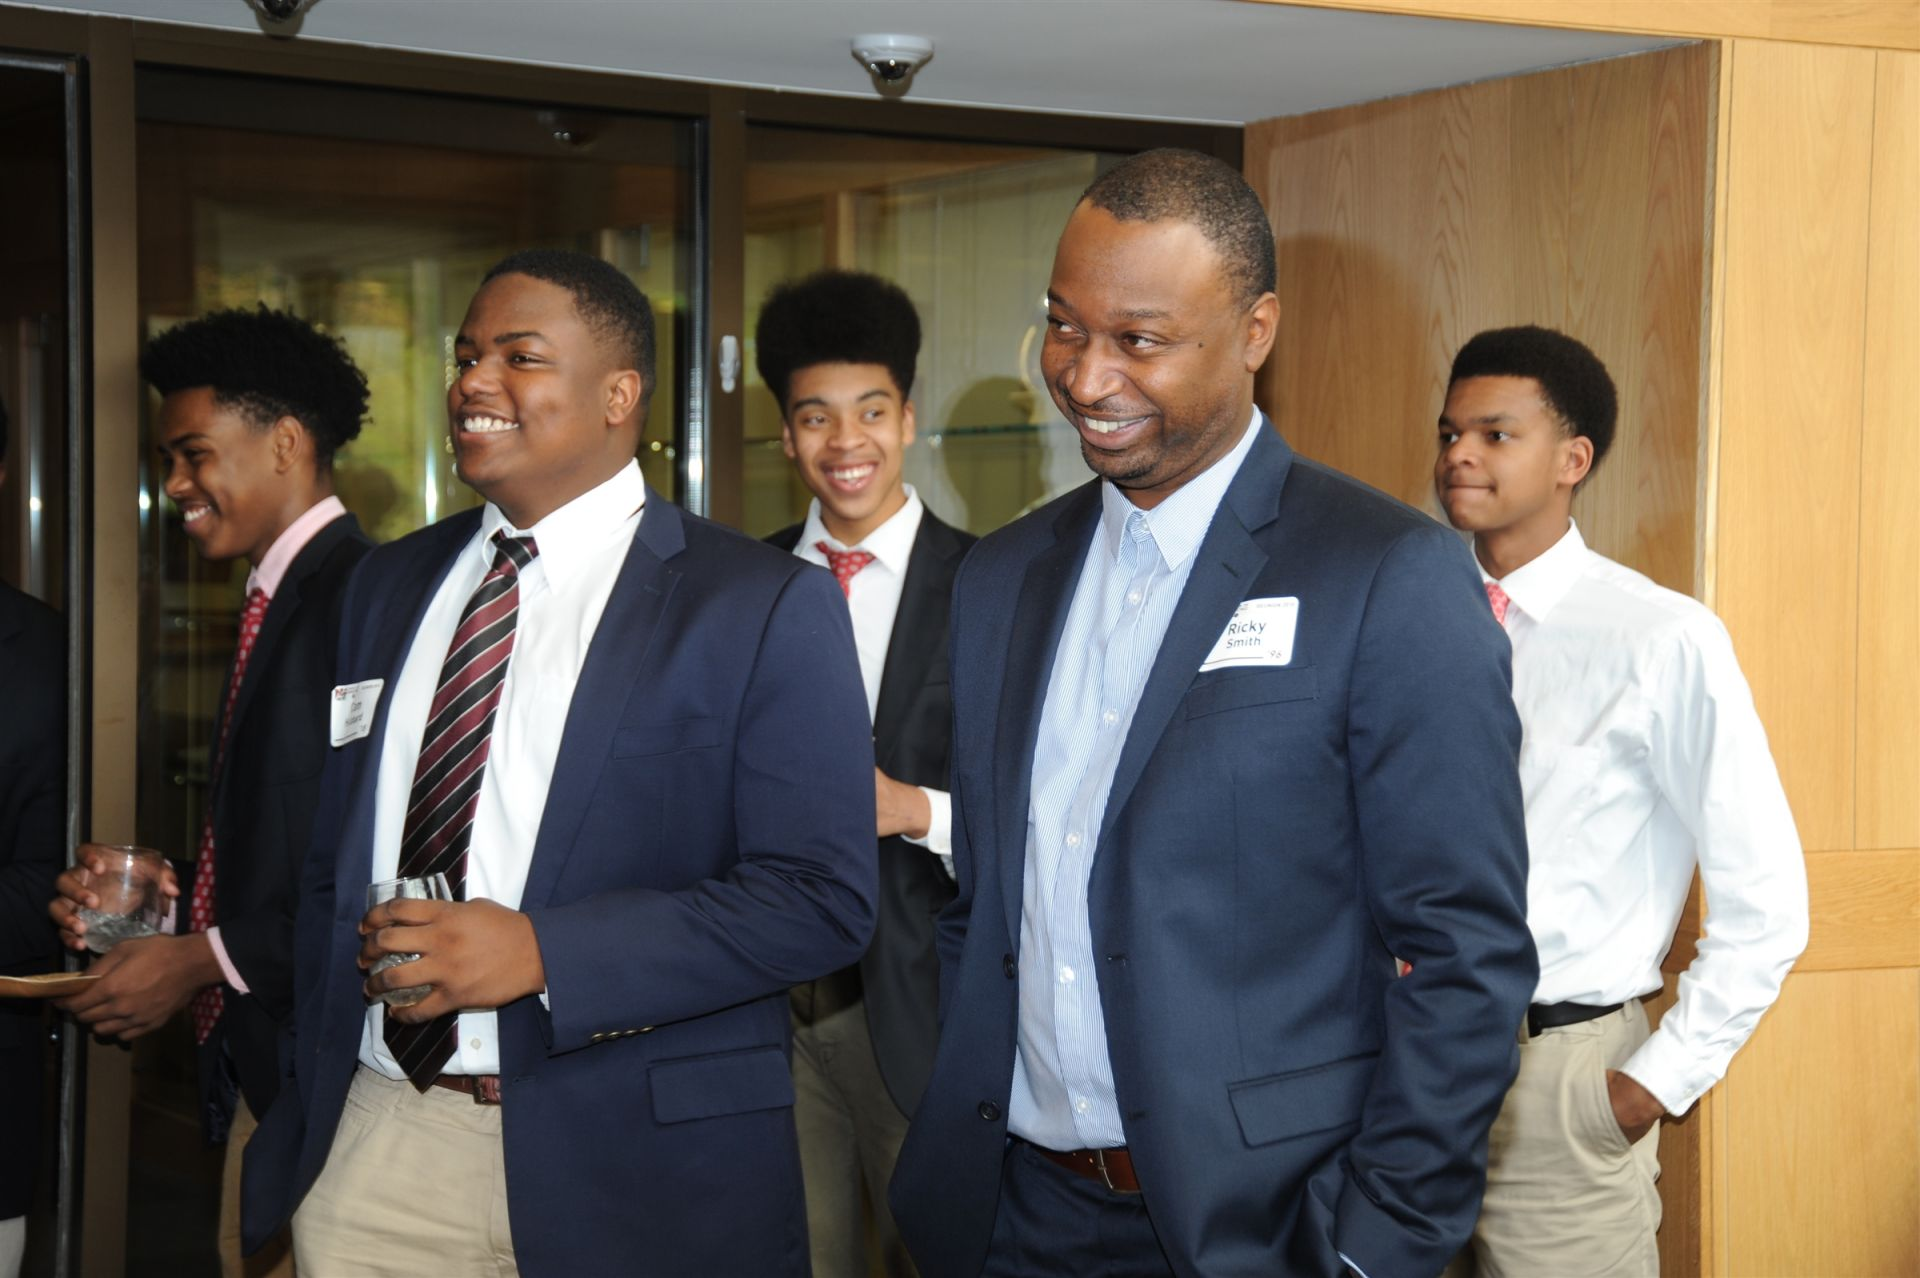 Guest Speaker Ricky Smith '96 and current students at the African American Alumni and Parent Reception